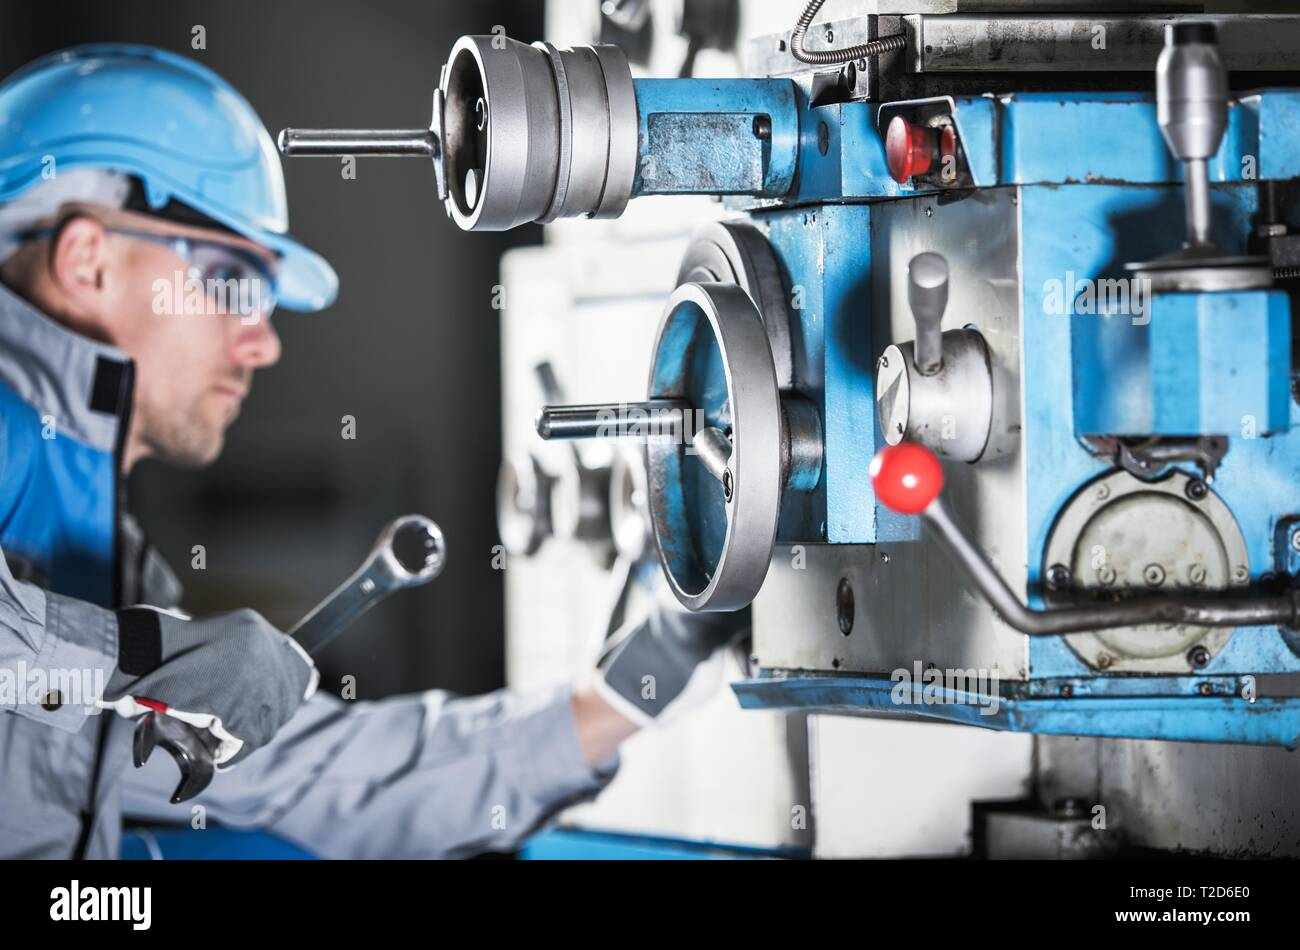 Caucasian Lathe Machine Technician with Wrench Trying To Adjust Machinery Elements. Metalworking Industry Theme. - Stock Image